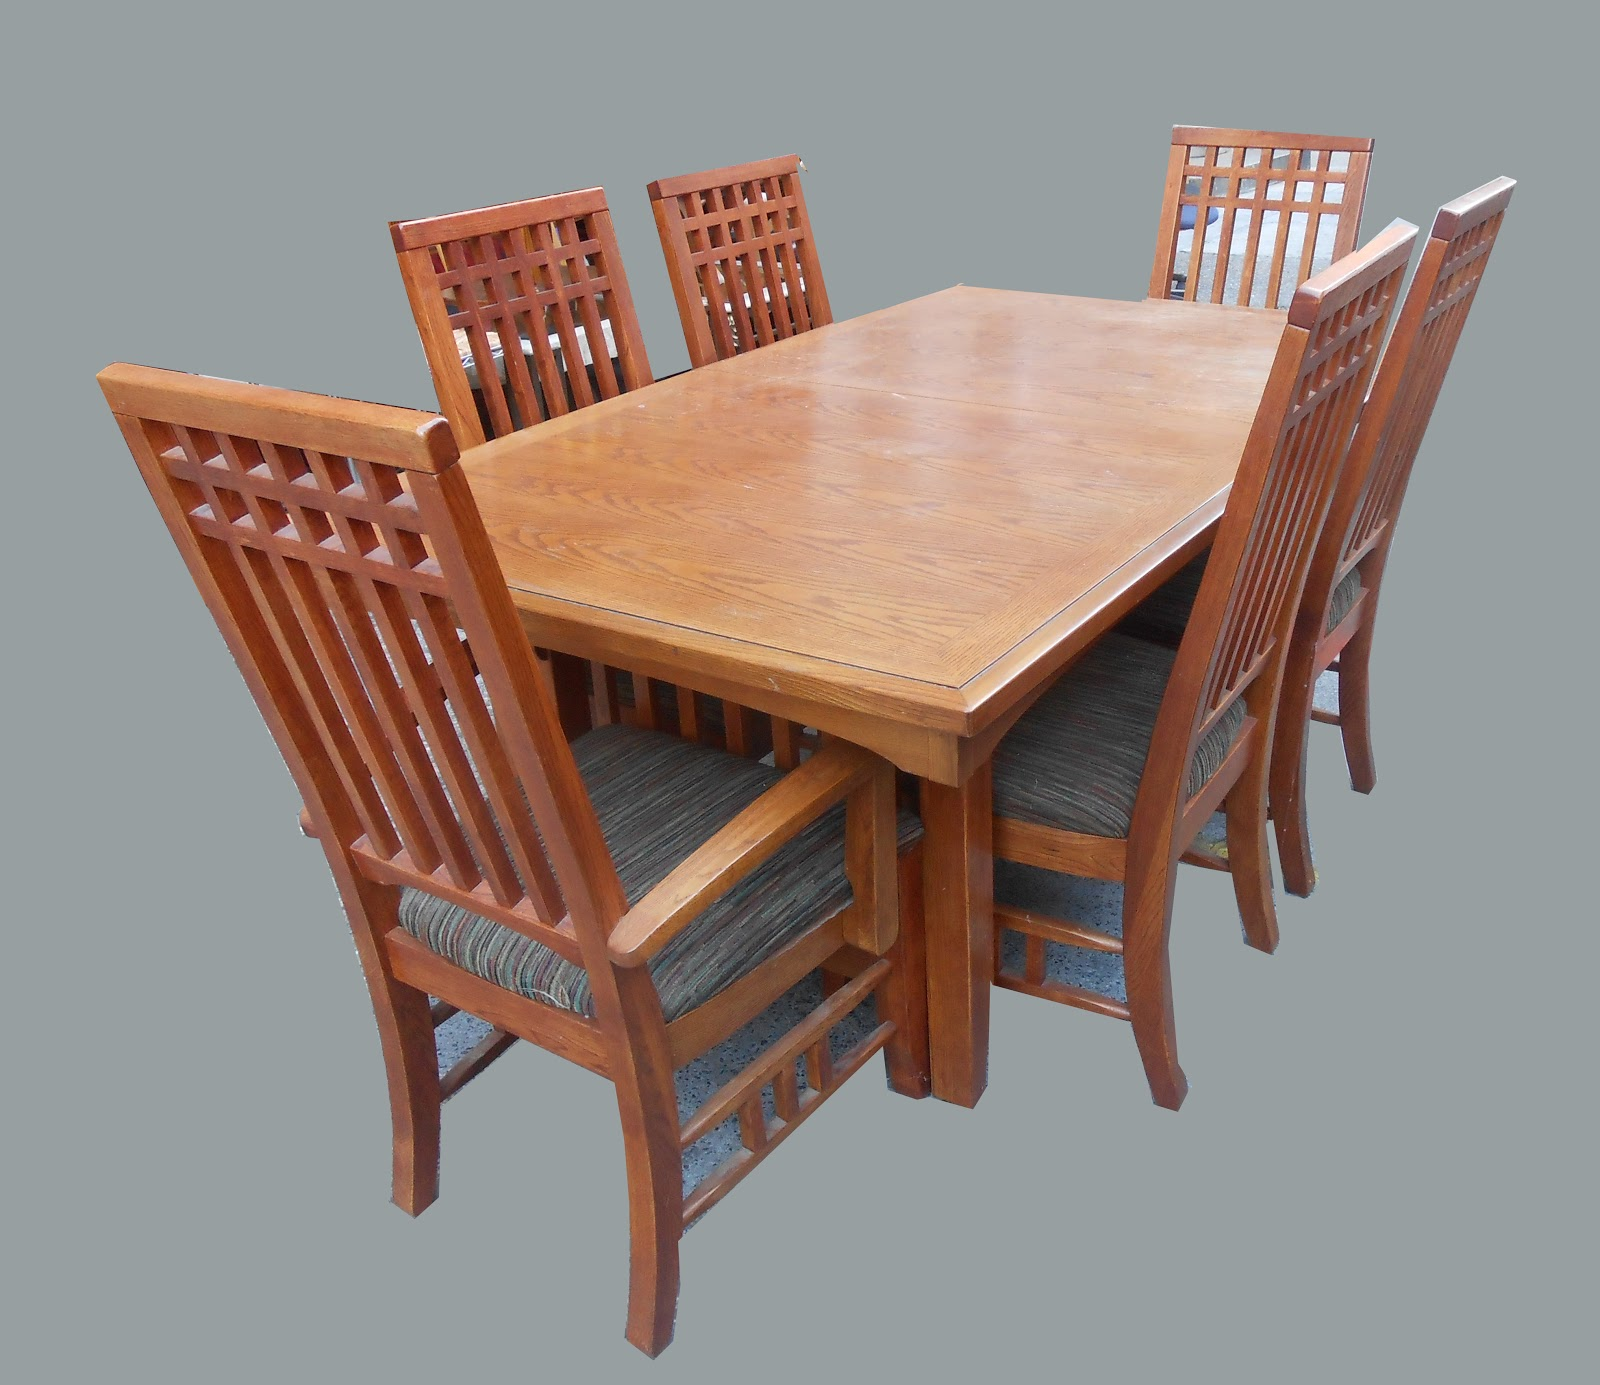 Uhuru furniture collectibles mission style dining table for Mission style dining table